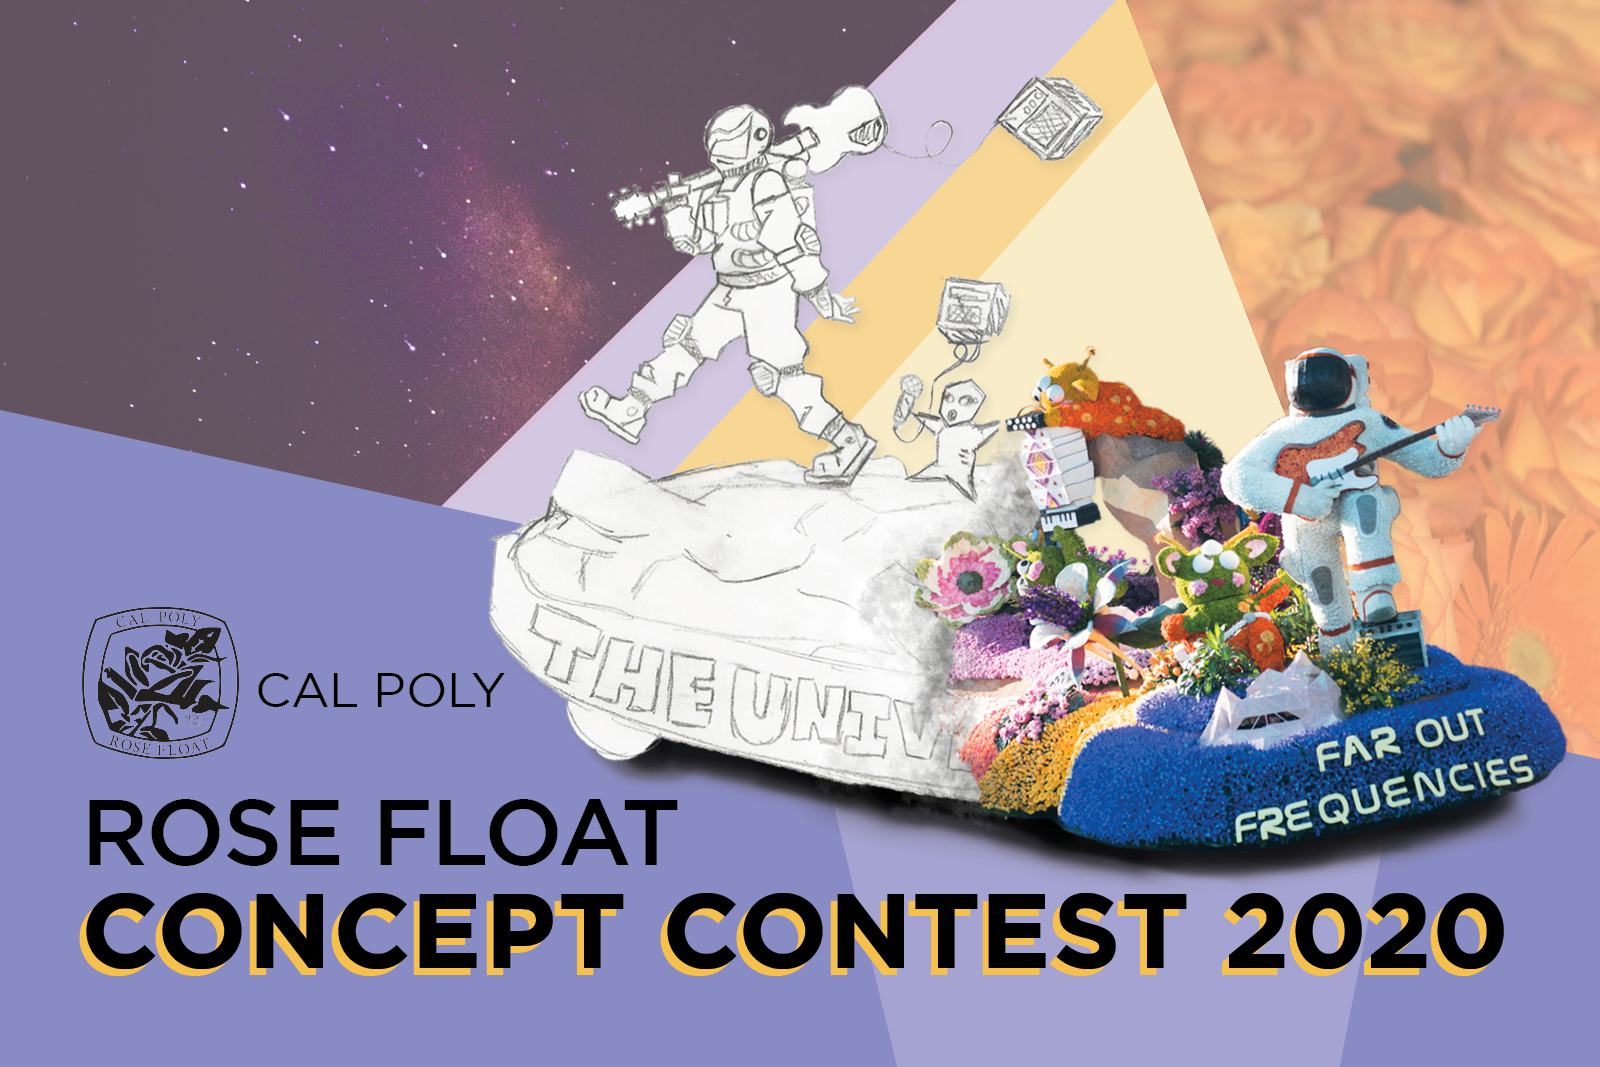 Cal Poly Rose Float Concept Contest 2020, Sketch of last year's winning design of an astronaut with a guitar and aliens singing combined with the final float design called